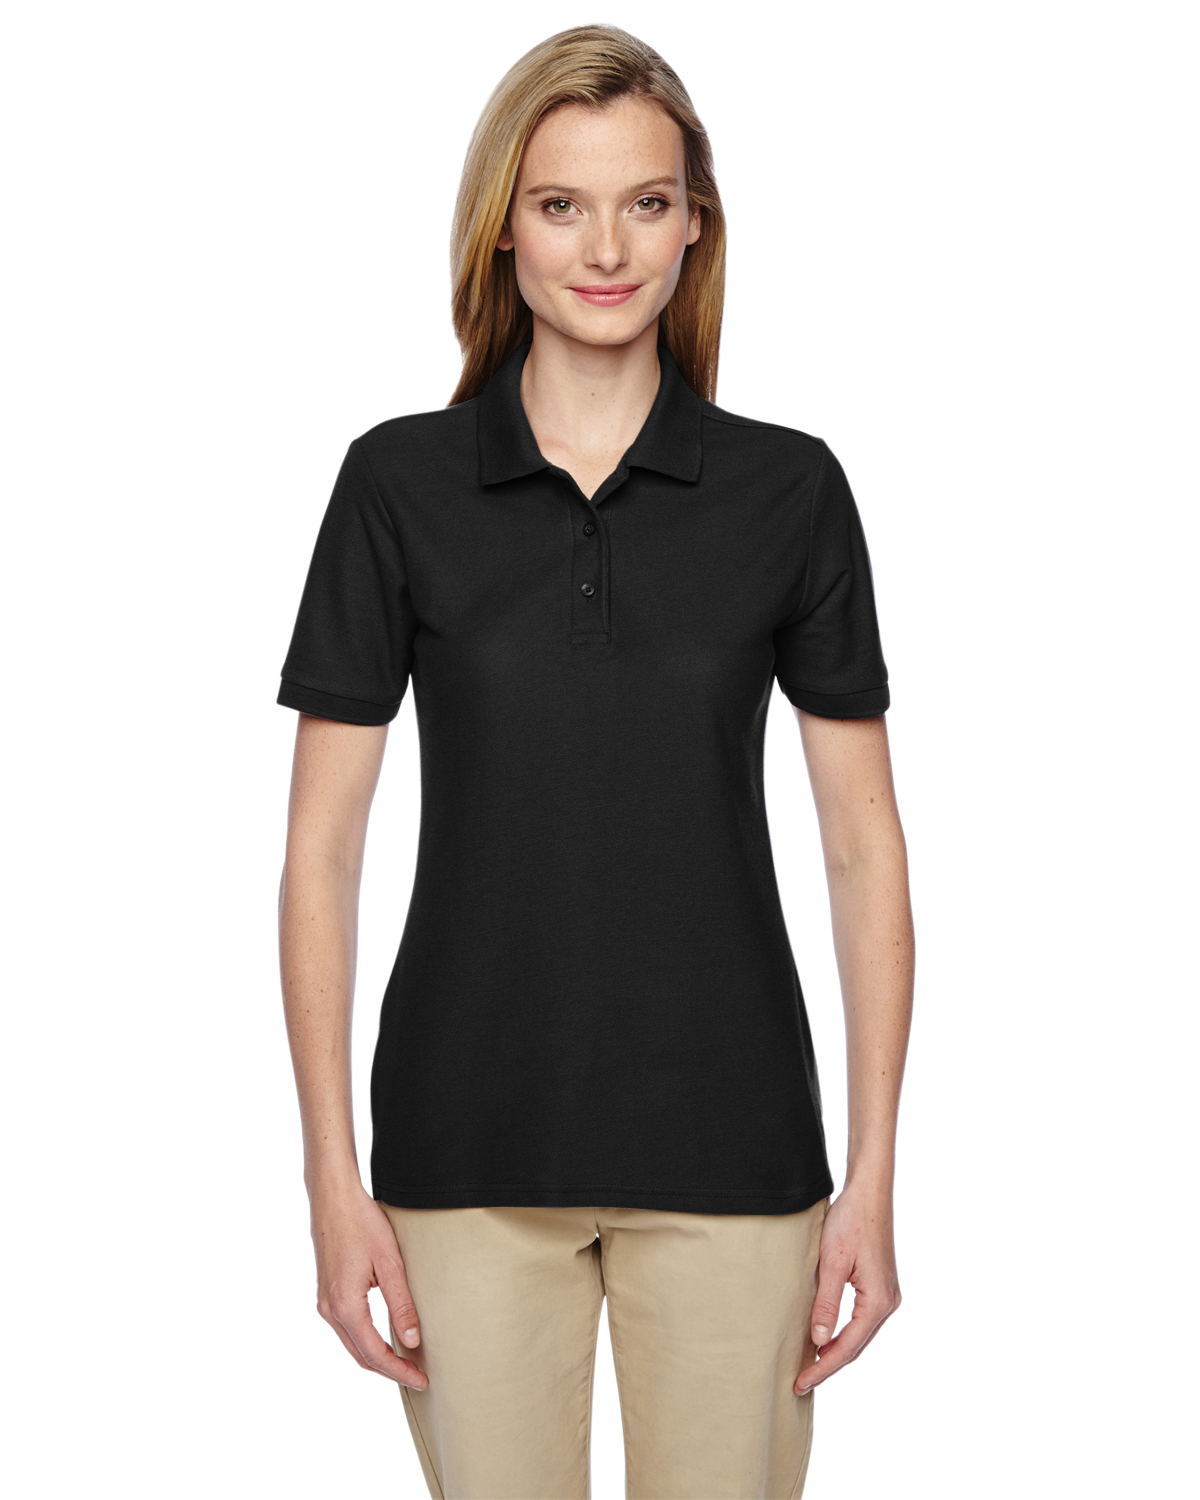 Jerzees 537WR - Ladies' 5.3 oz. 65/35 Easy-Care Polo